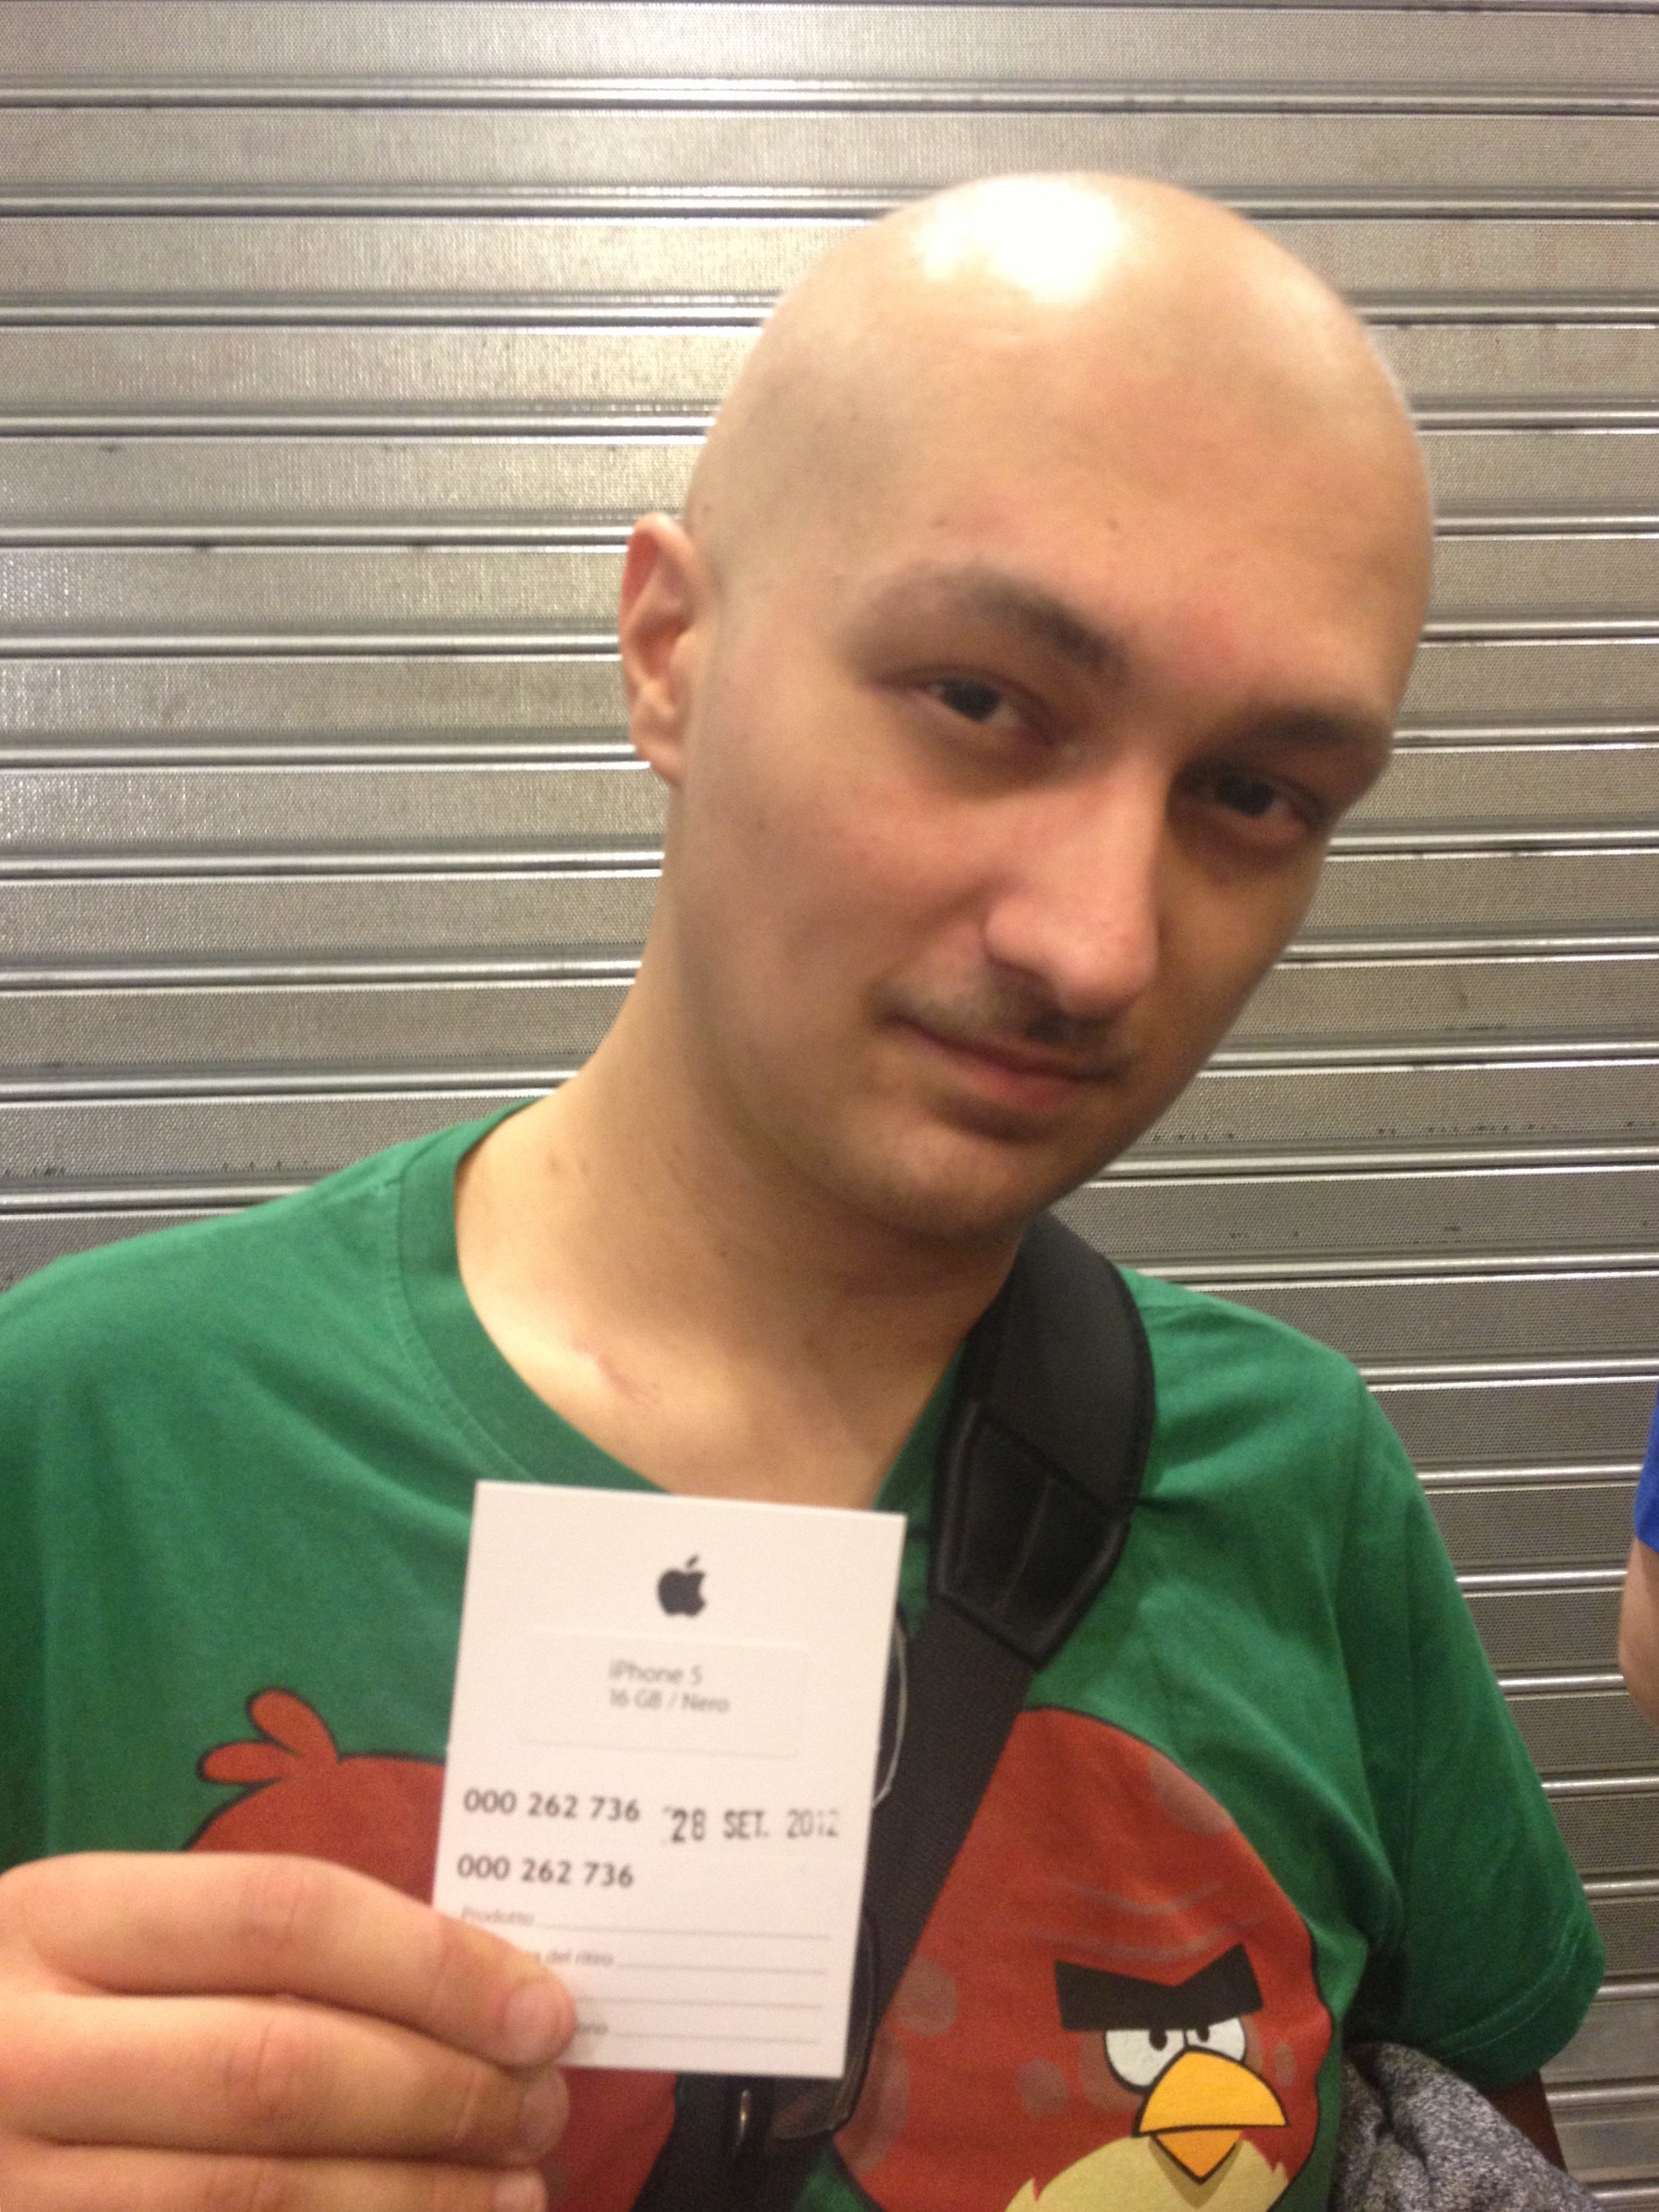 Thinner and weaker, but still stubborn enough to wait in line for an iPhone launch.